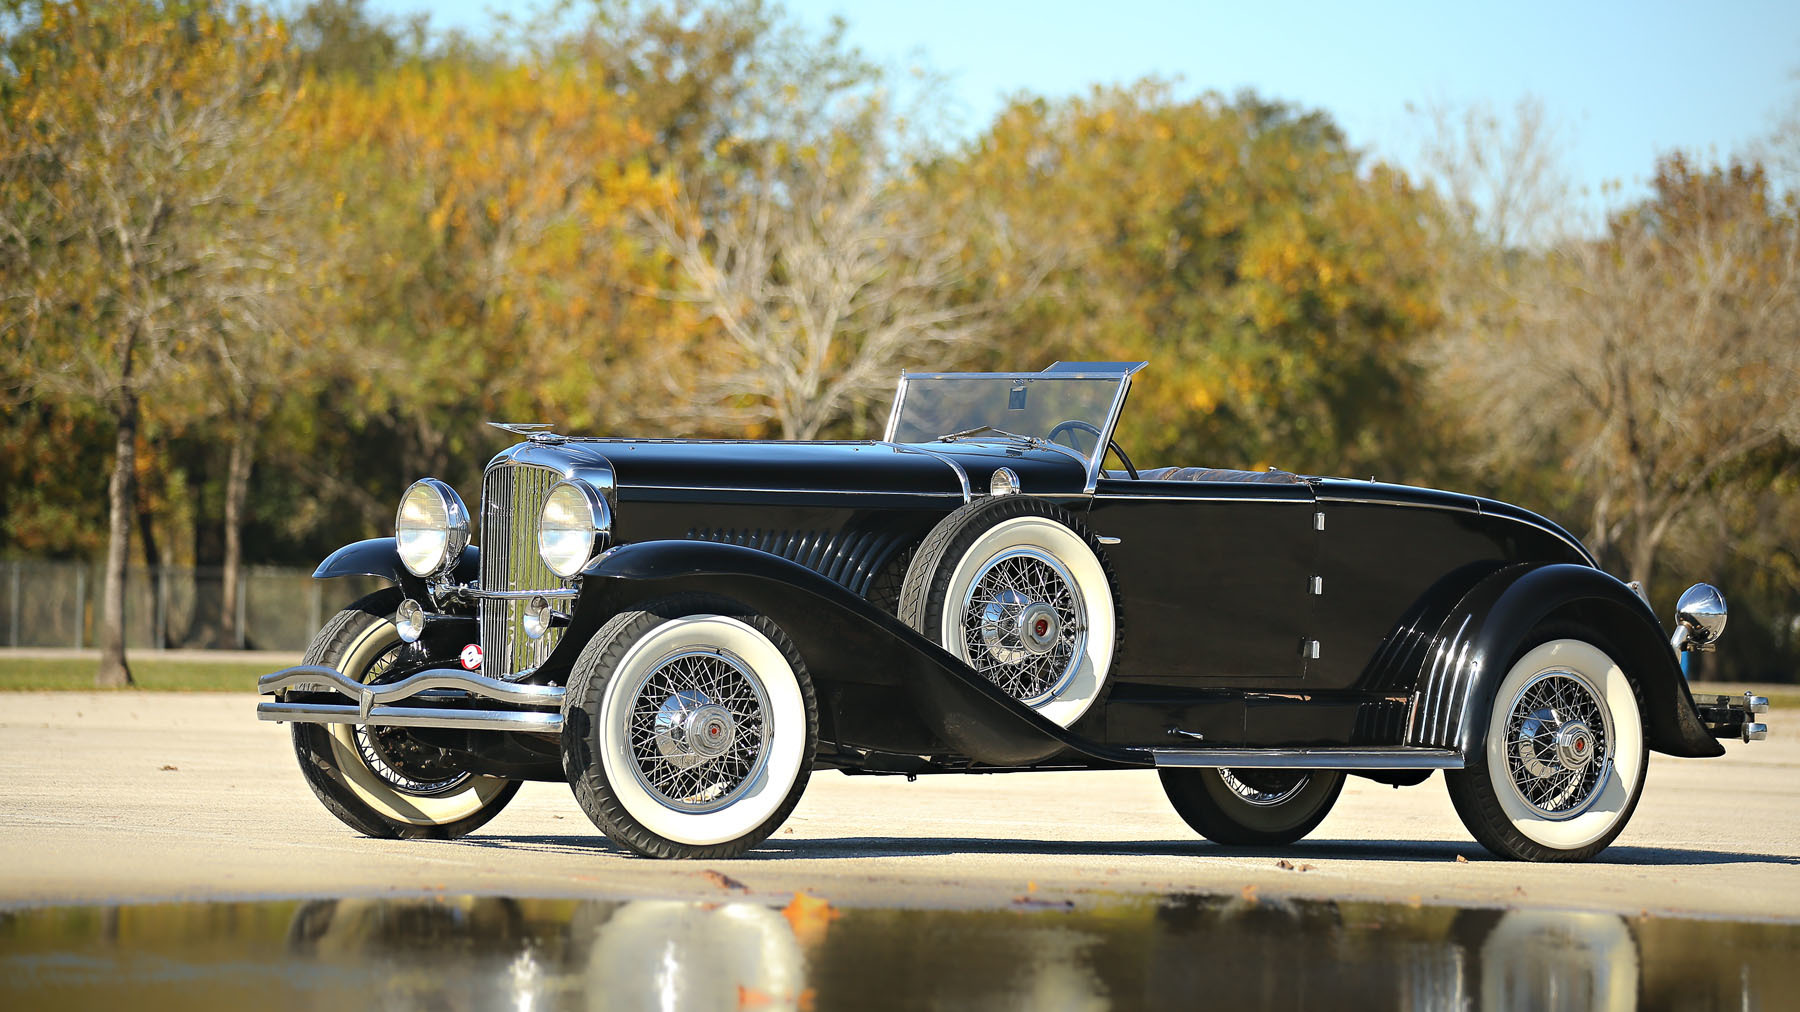 1931-duesenberg-model-j-disappearing-top-convertible-coupe-0-1